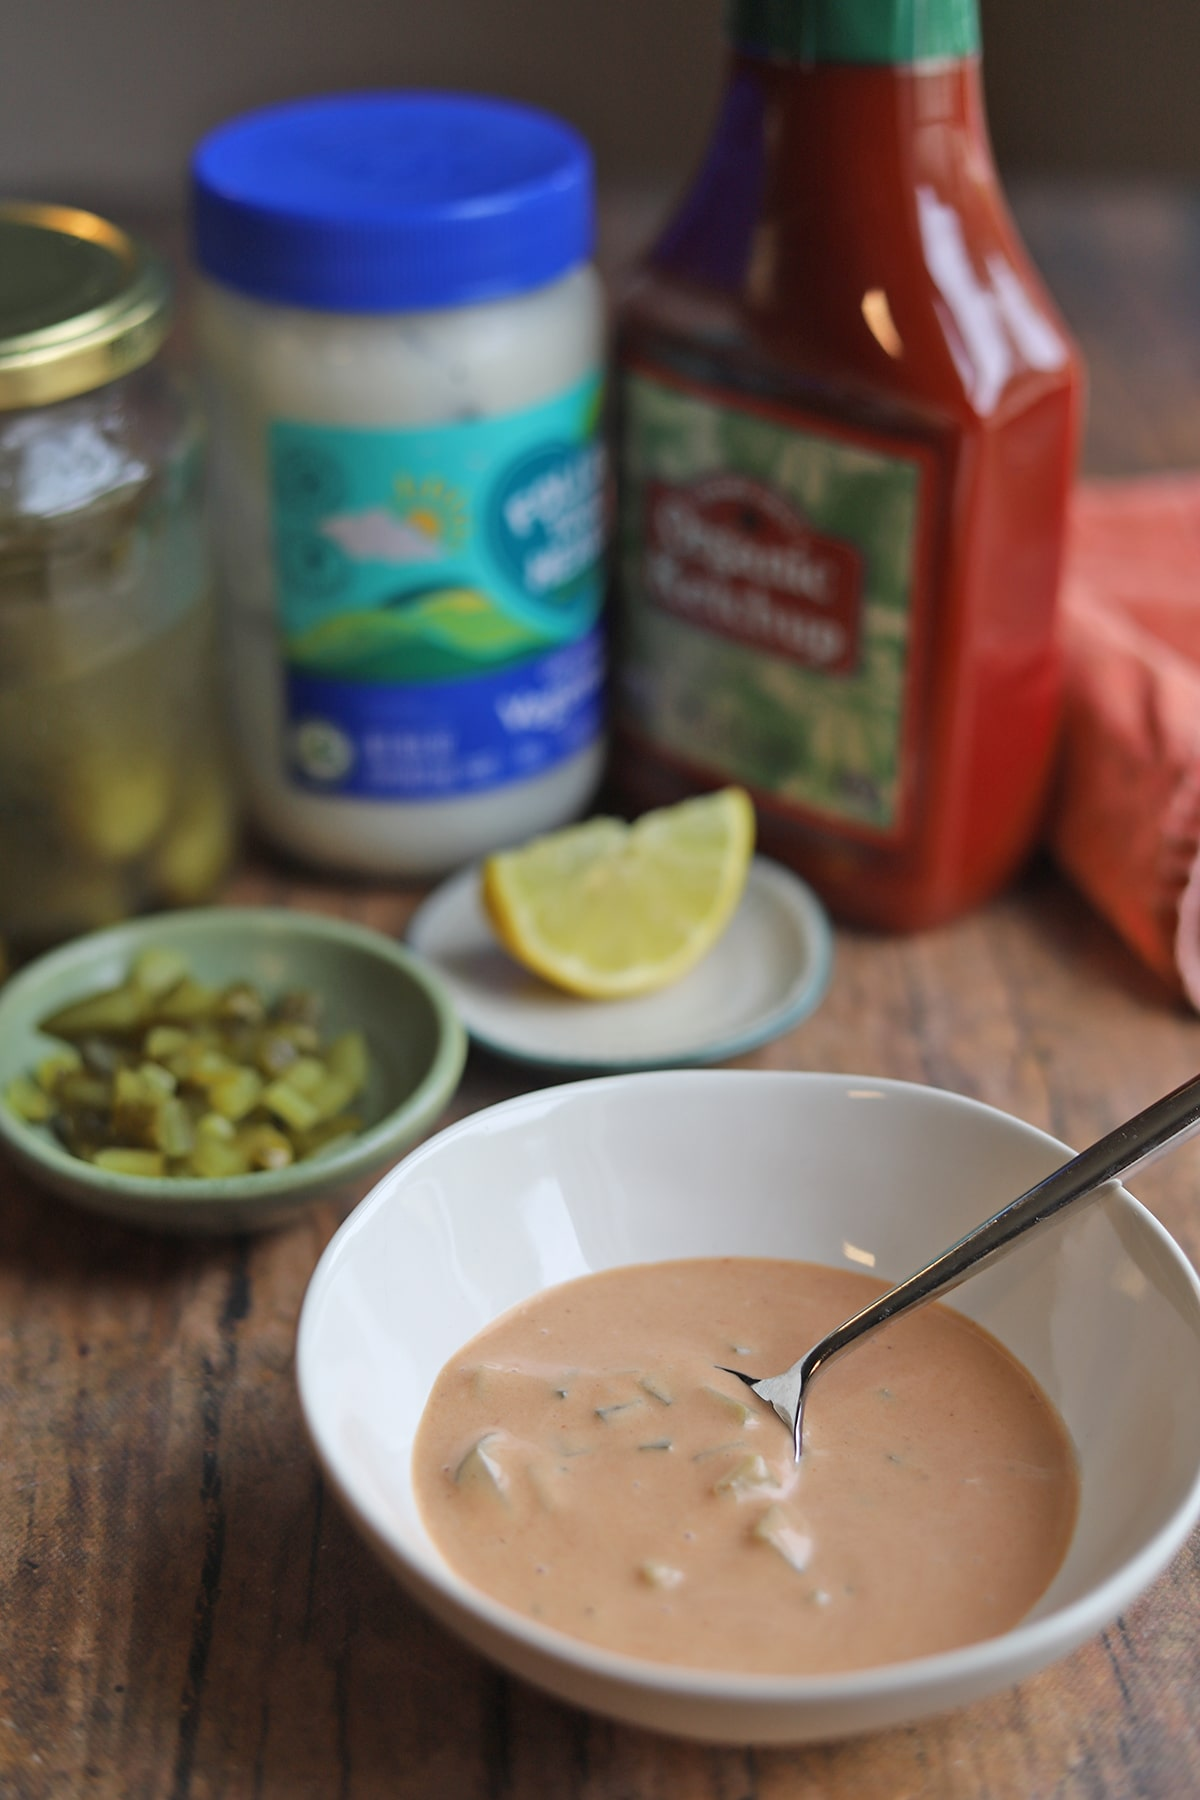 Thousand Island dressing in small bowl by ingredients.